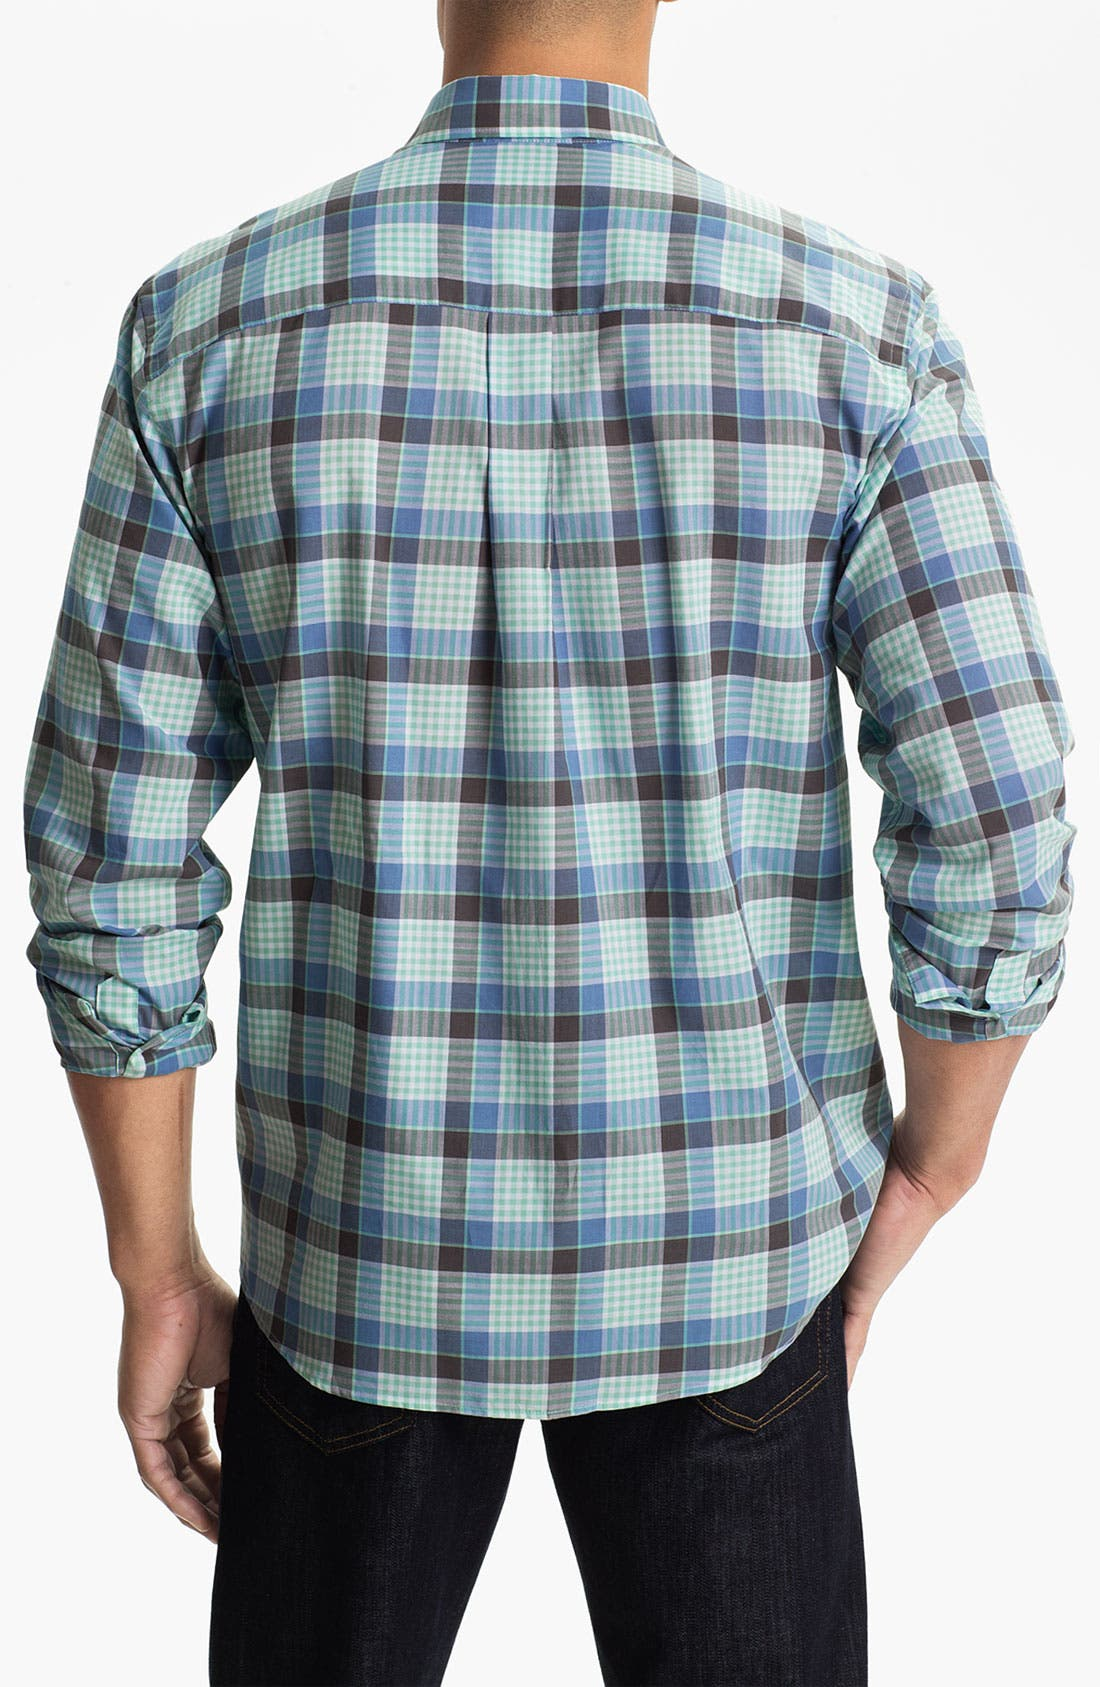 Alternate Image 2  - Cutter & Buck 'Tabor Plaid' Classic Fit Sport Shirt (Big & Tall)